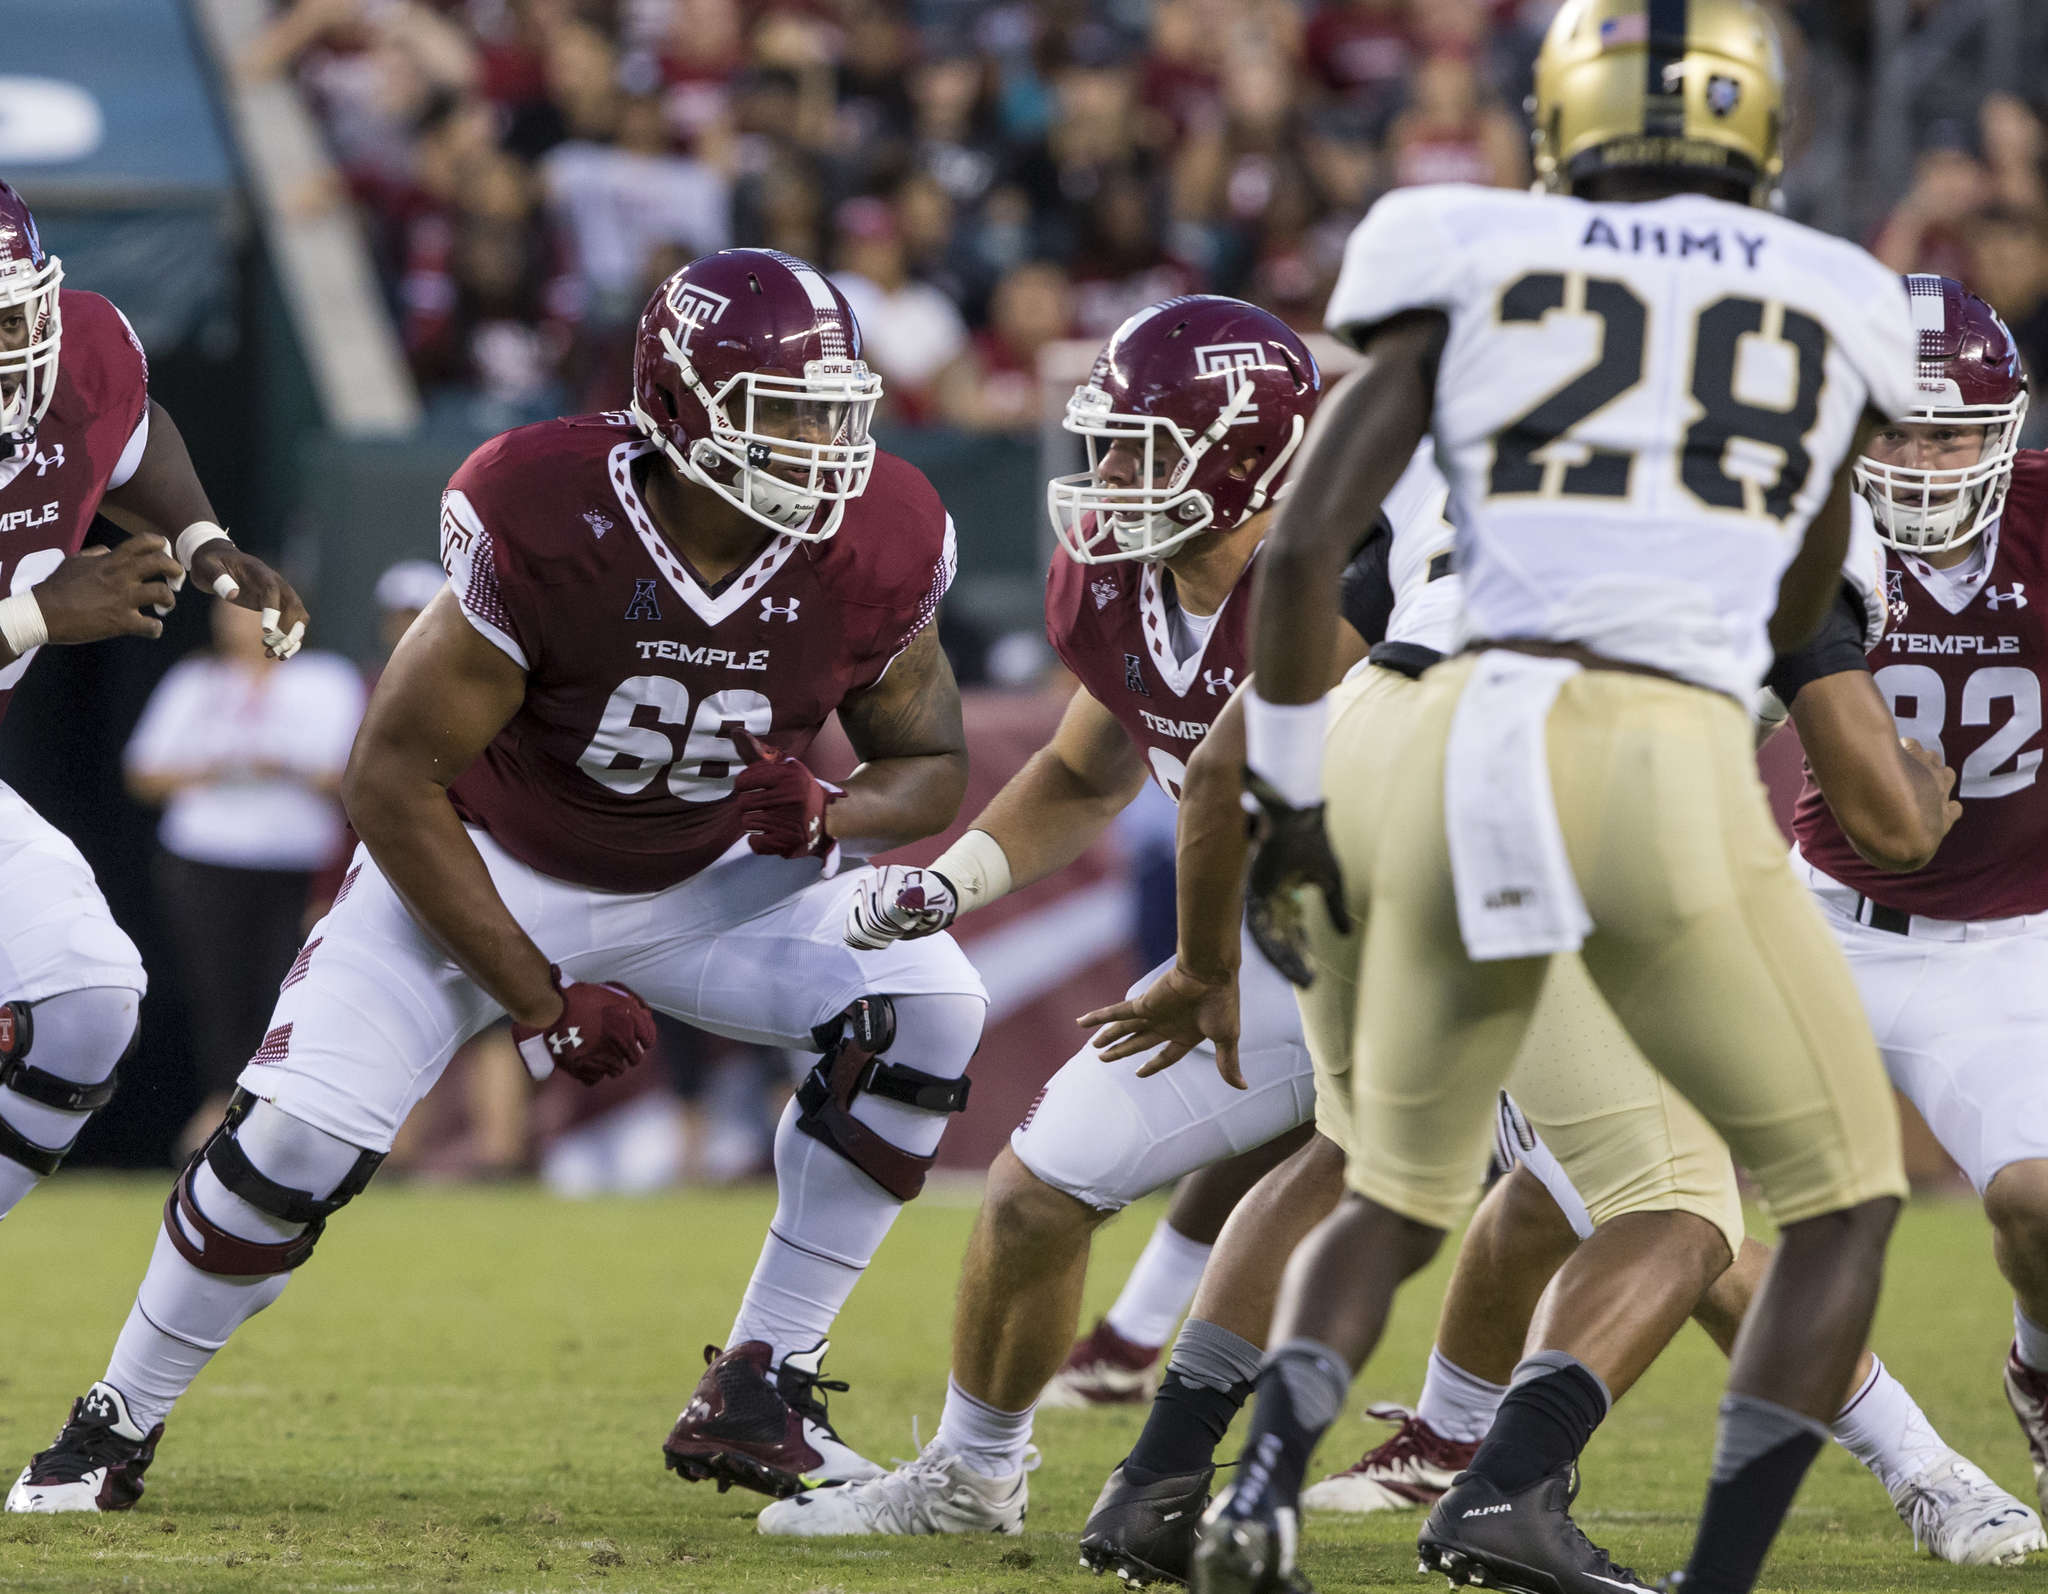 Dion Dawkins (66) hasbecome a top offensive lineman for the Owls. TEMPLE UNIVERSITY